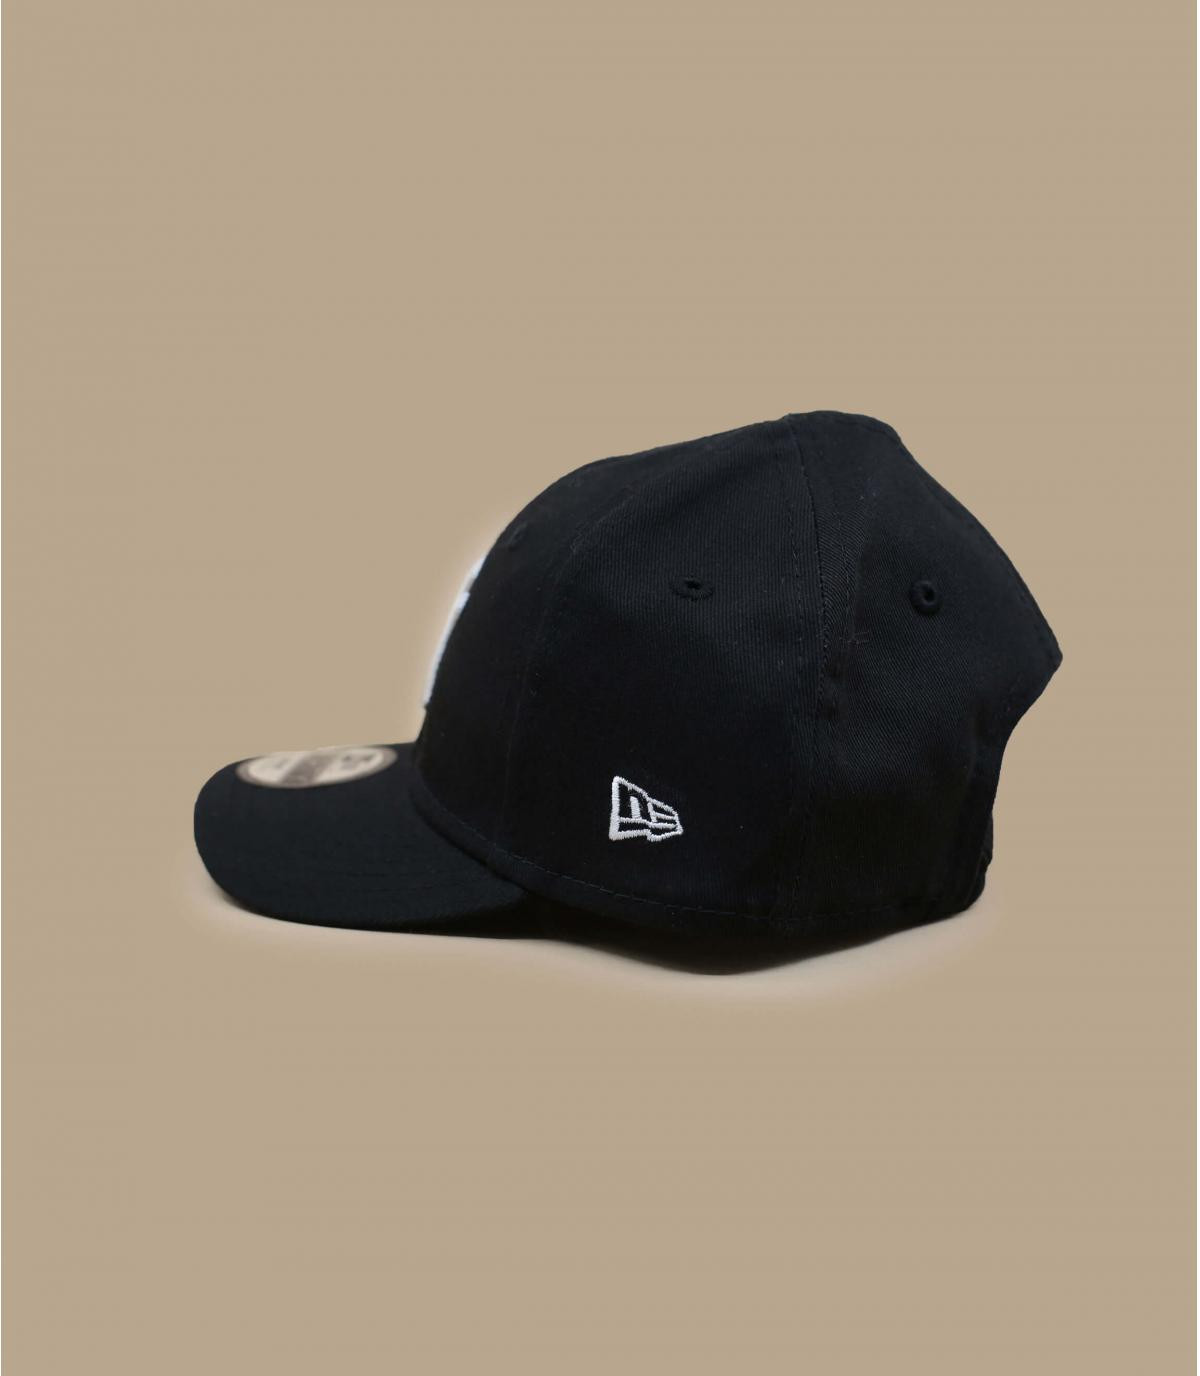 Details Baby NY 9Forty black white - afbeeling 3